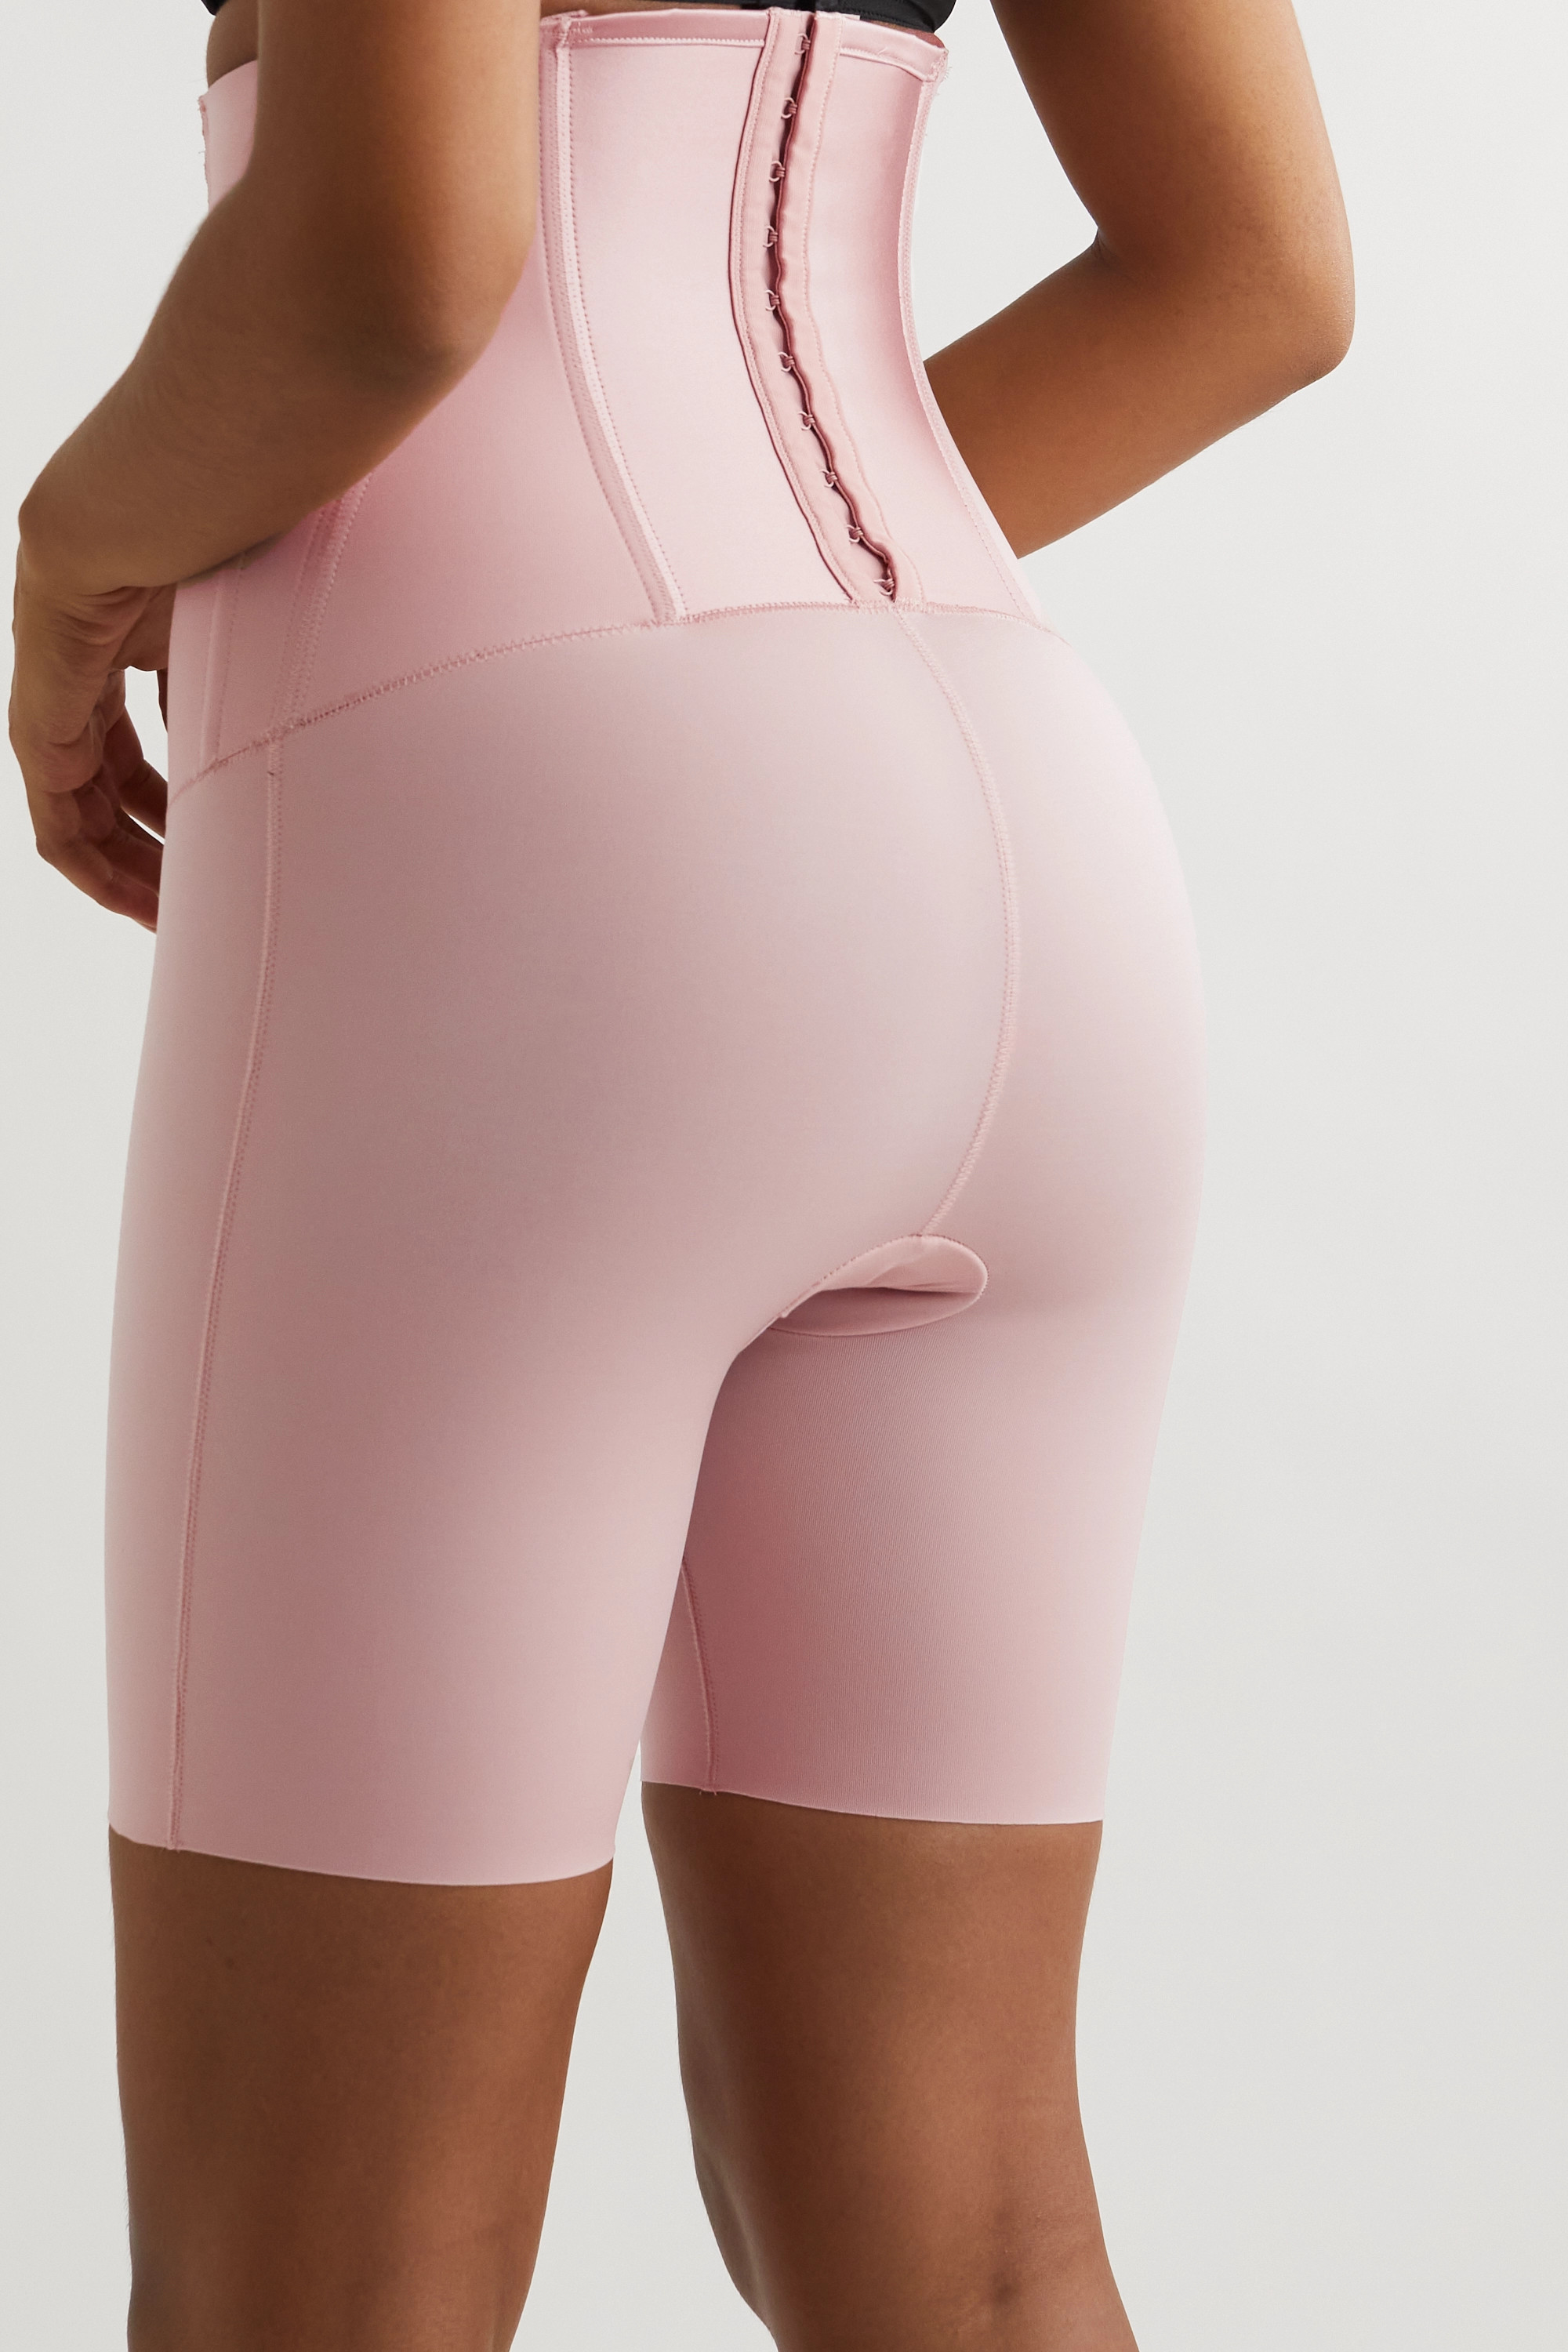 SPANX Under Sculpture high-rise control shorts